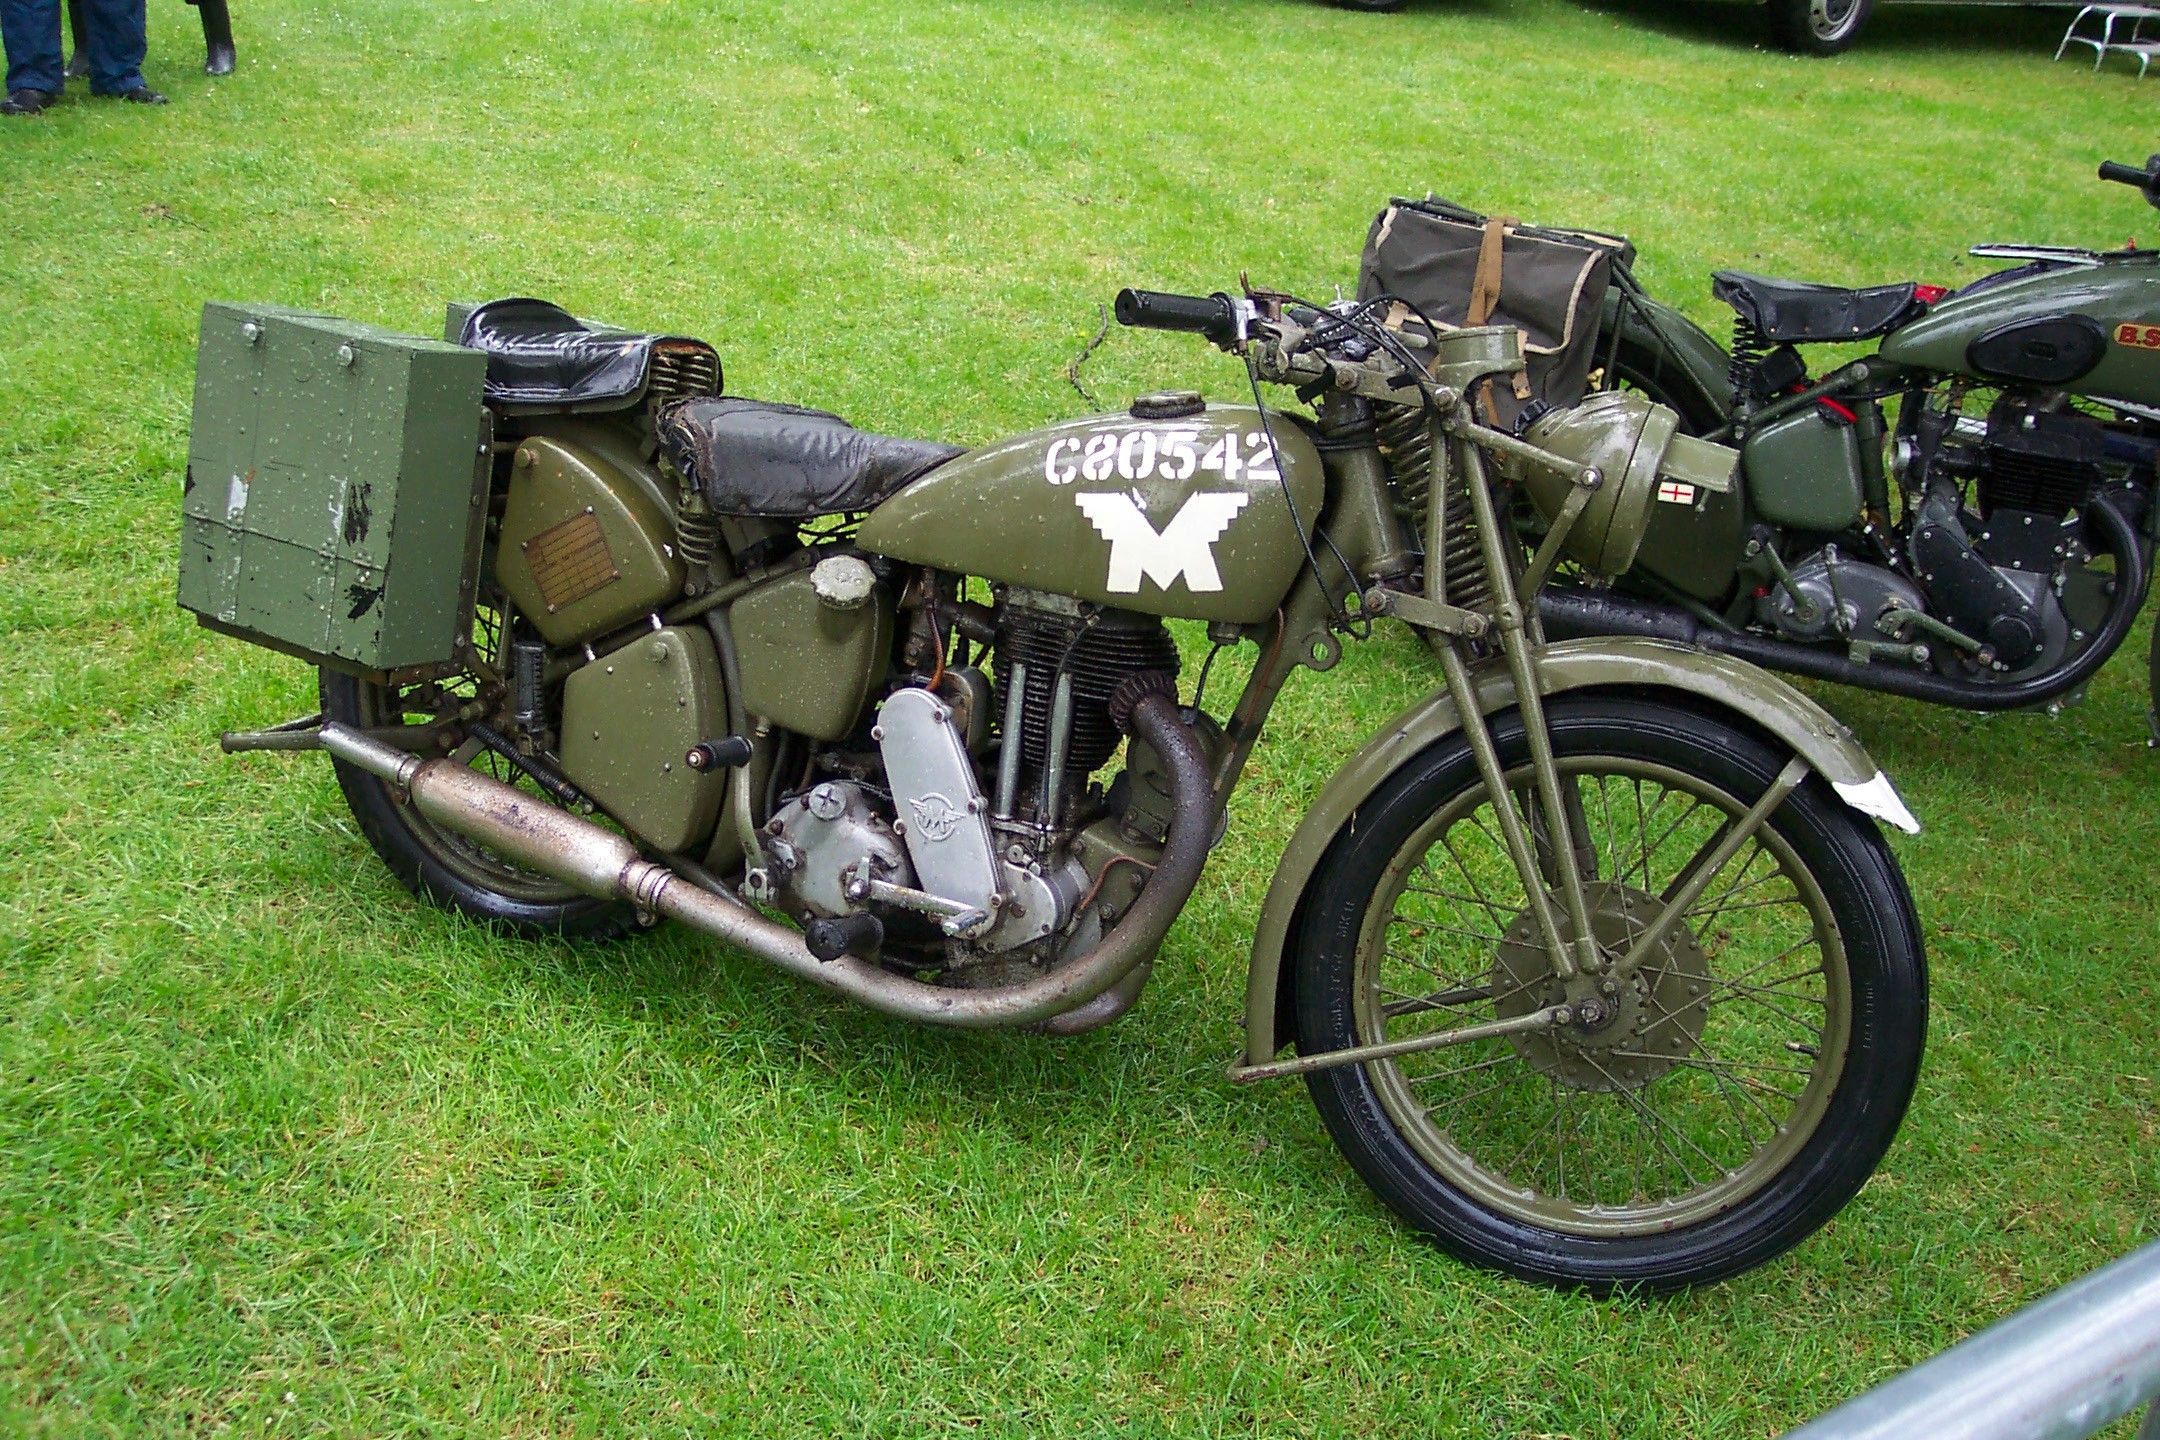 Matchless g 11 csr for sale 1958 on car and classic uk c544589 - Matchless Motorcycles Matchless G50csr Pictures Motorcycles Pinterest British Motorcycles Motorbikes And Vintage Bikes